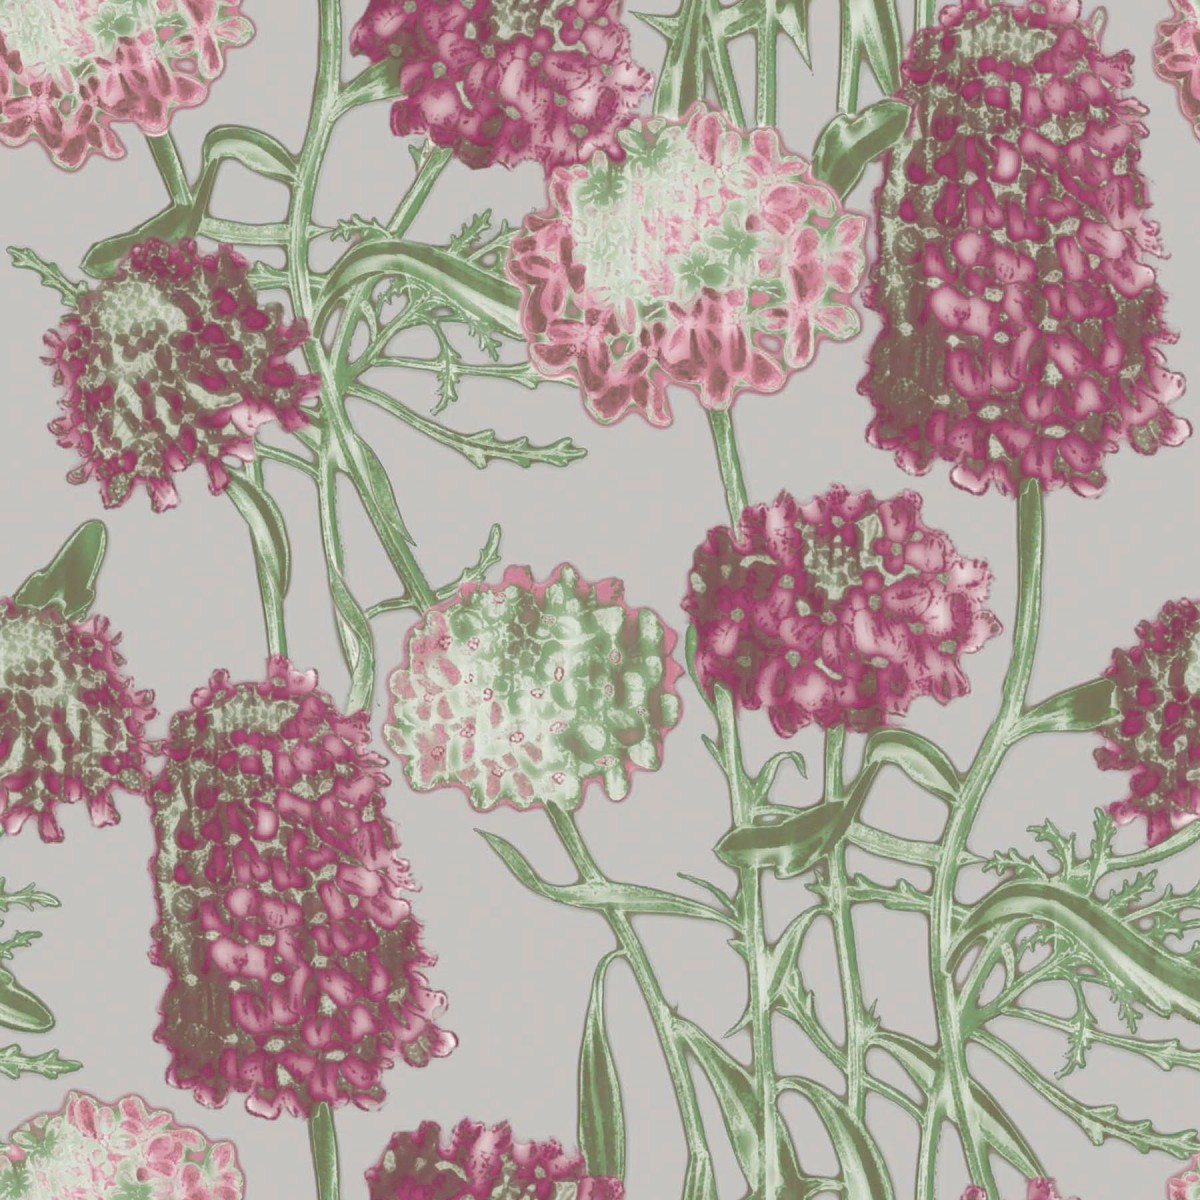 awesome tempaper wallpaper in cute floral pattern for chic wall decor ideas